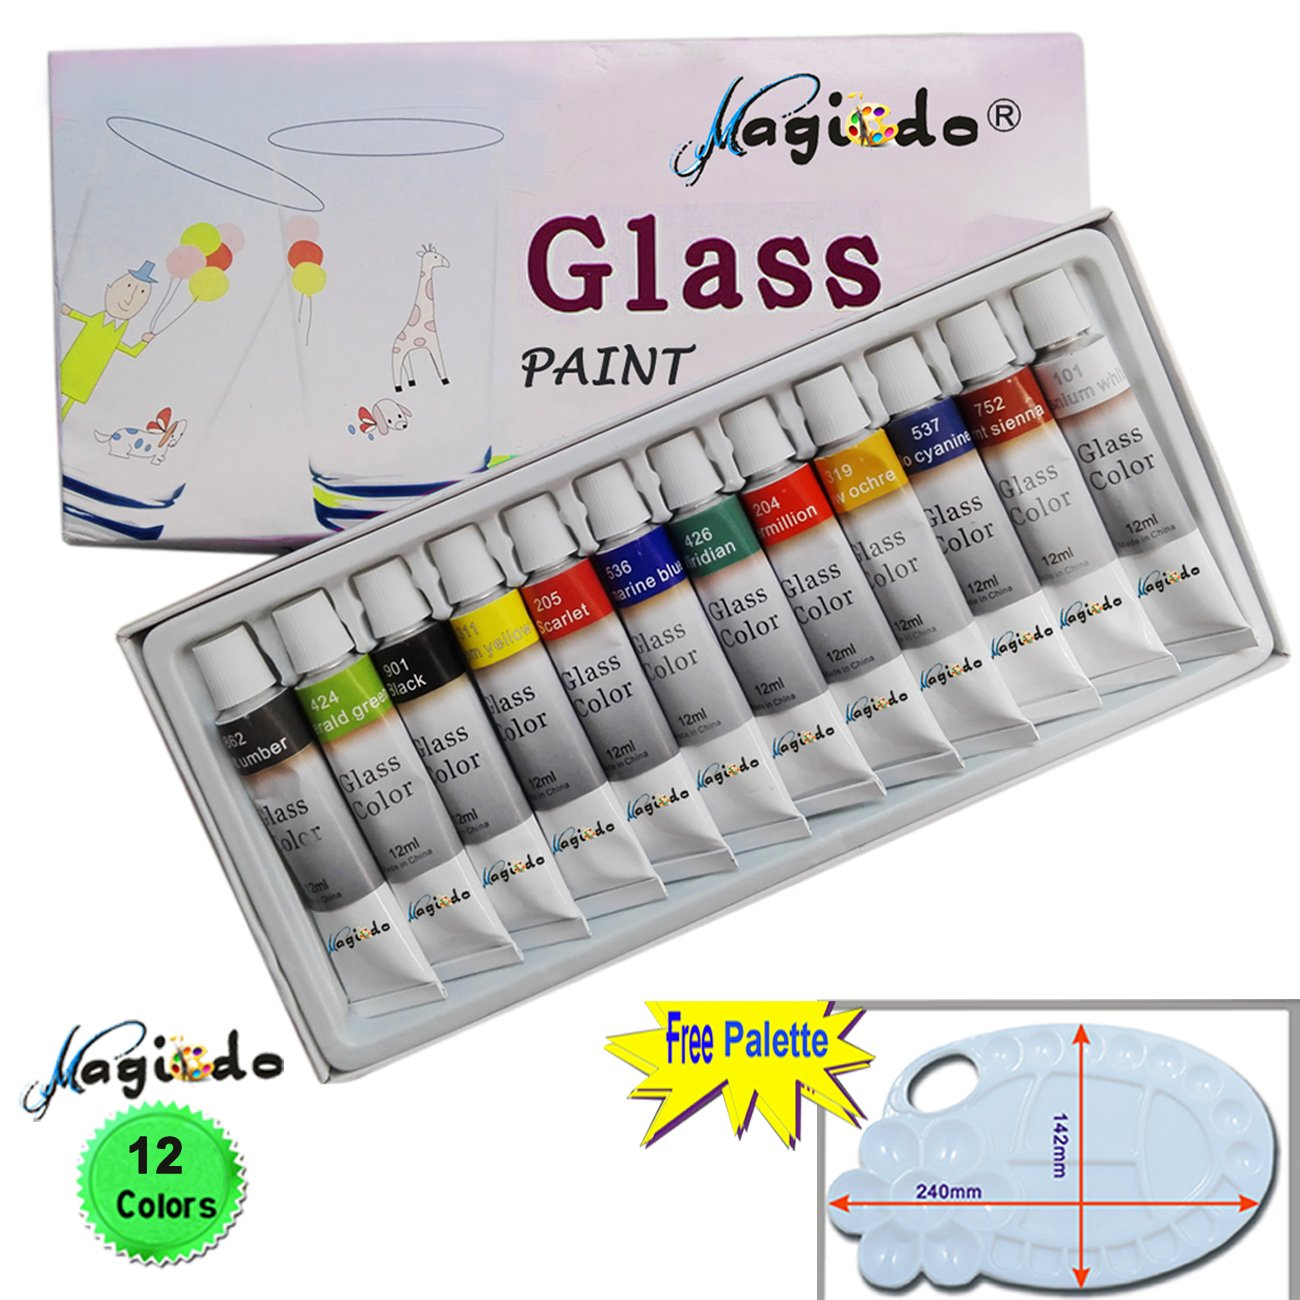 Non toxic craft paint - Hot Sale 2017 Magicdo 12 Cols Glass Paint With Free Palette Professional Glass Colour Set Quality Non Toxic